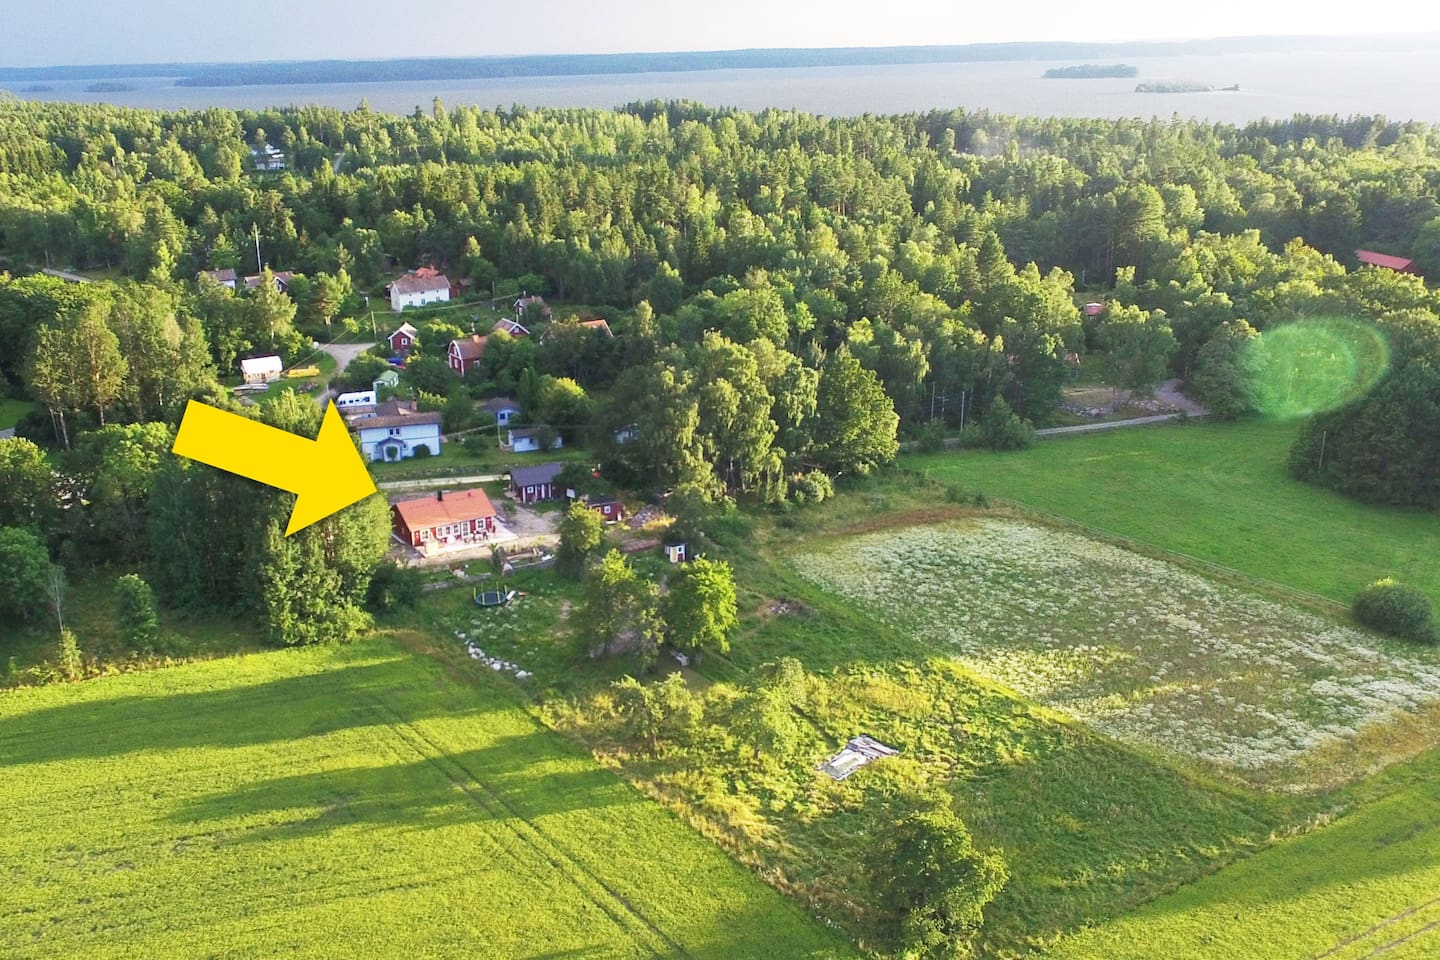 The house and the village of Hallsta. The lake Mälaren in the background.